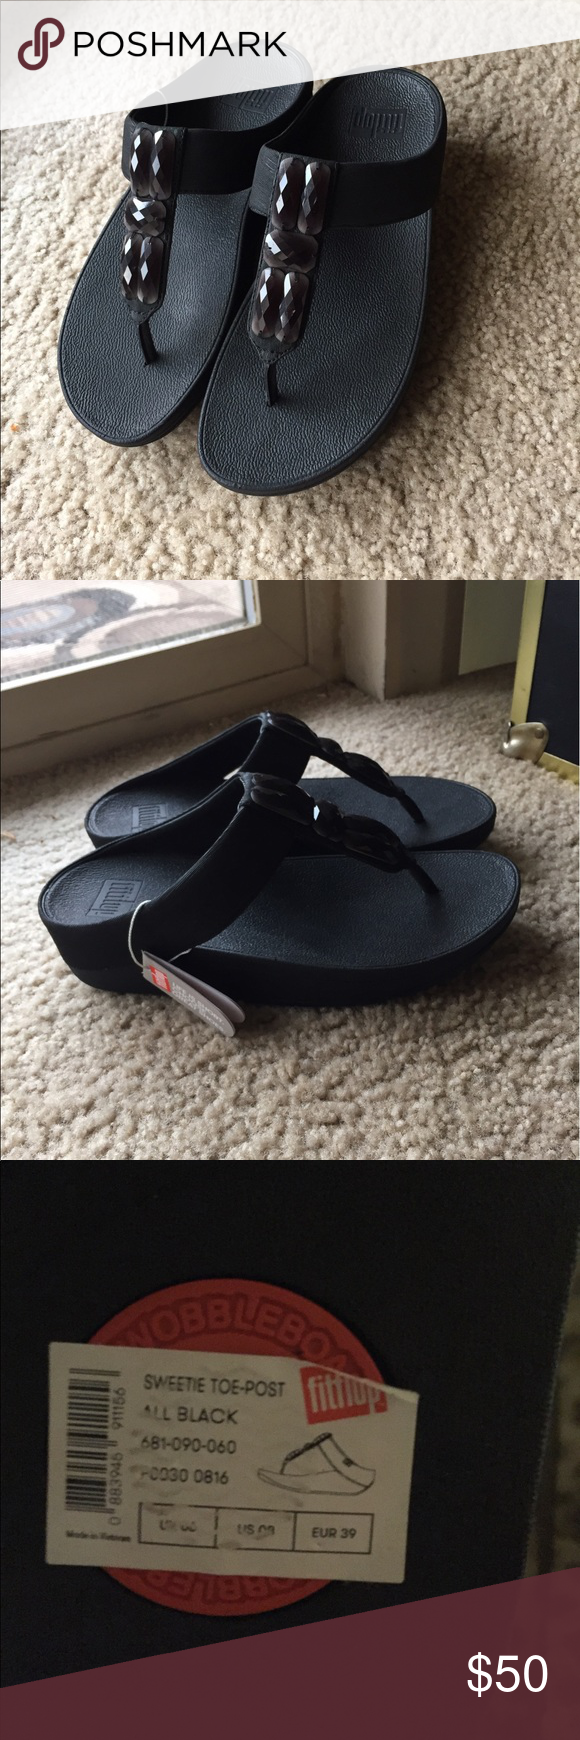 767d6b30123062 NWT Fitflop Sandals NWT Sweetie Toe-Post All black Fitflop Shoes Sandals